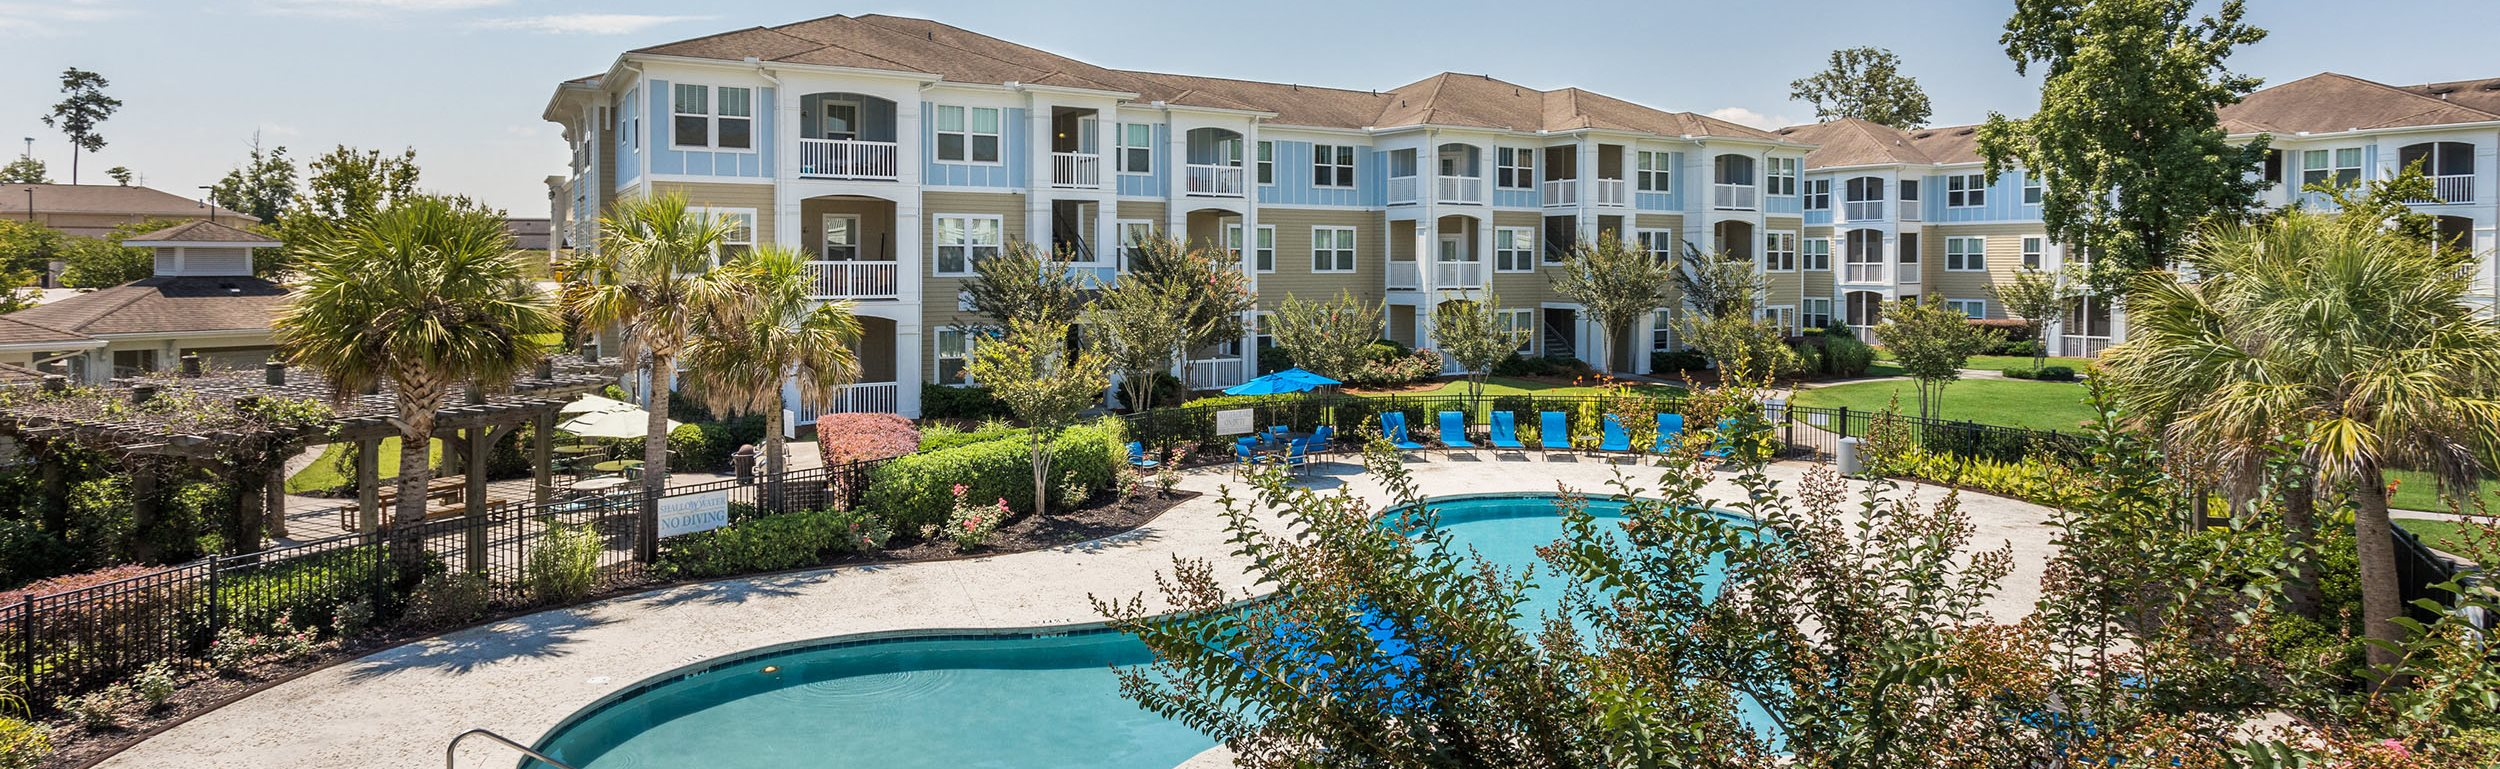 Poolside Sundeck with Balconies Overlooking - St James at Goose Creek